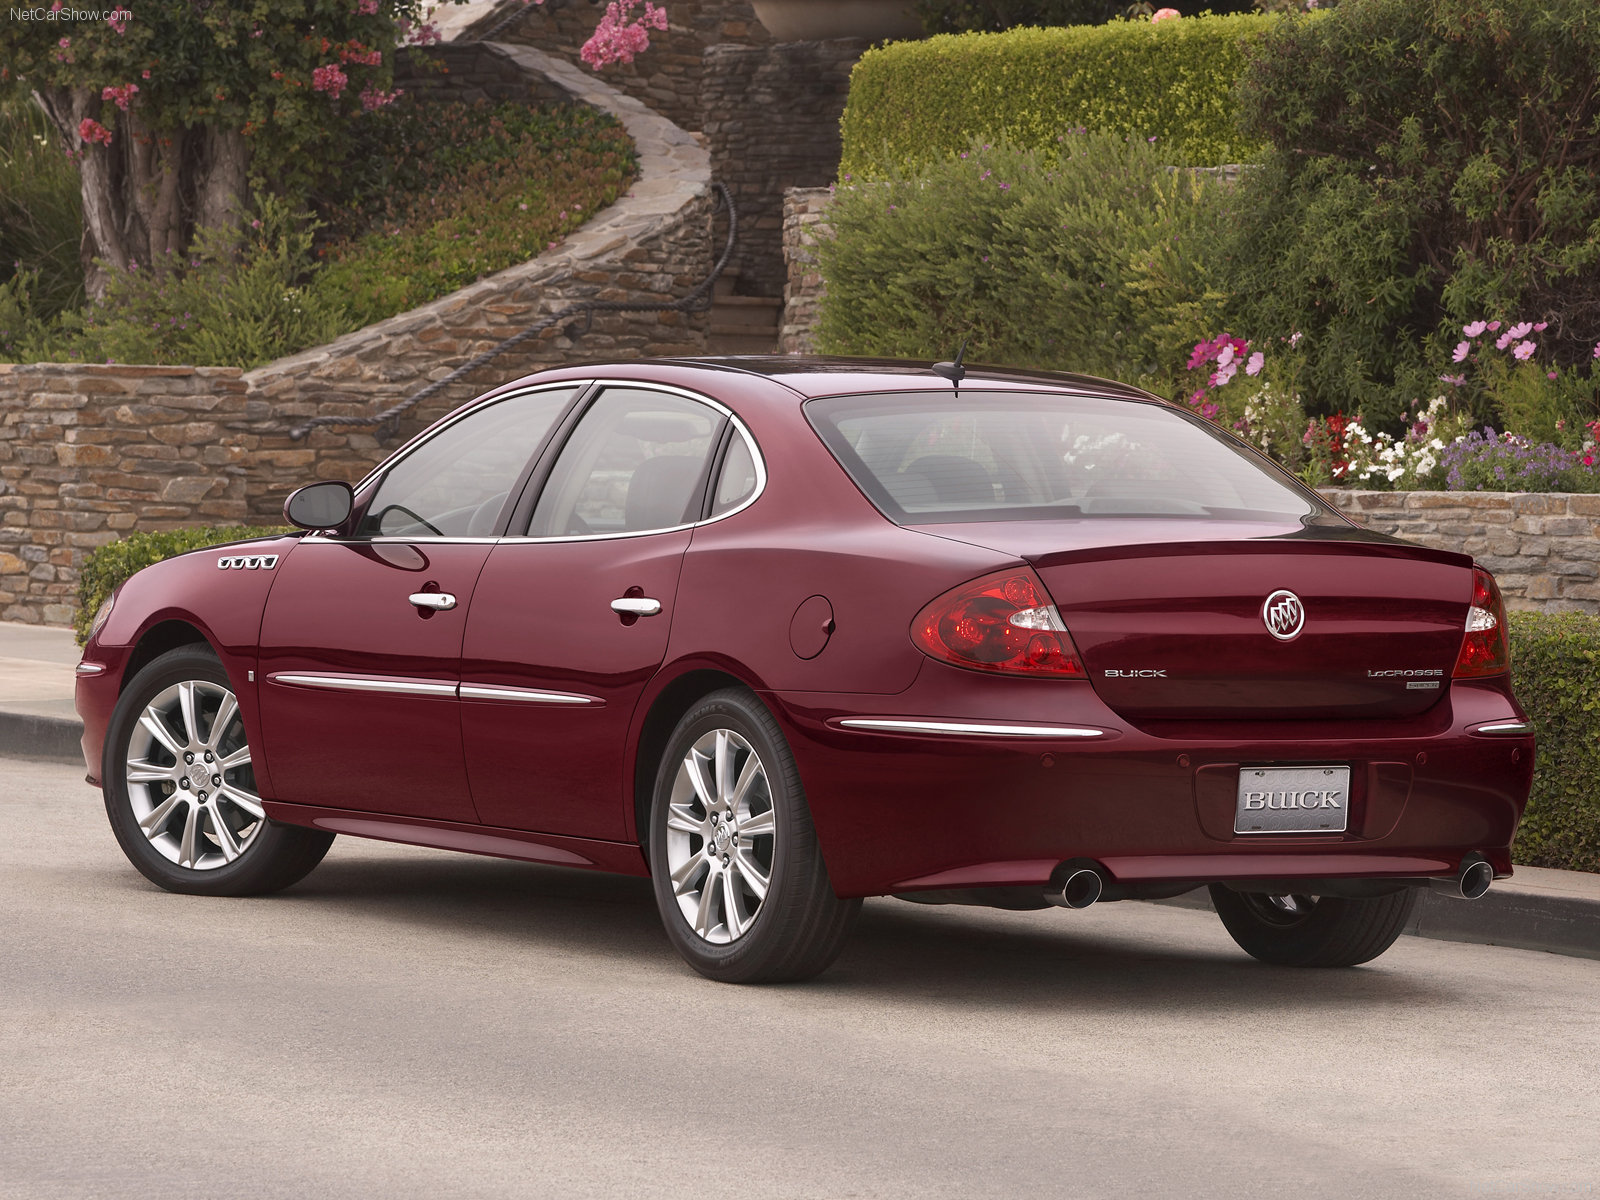 Buick LaCrosse Super photos Gallery with 9 pics CarsBase